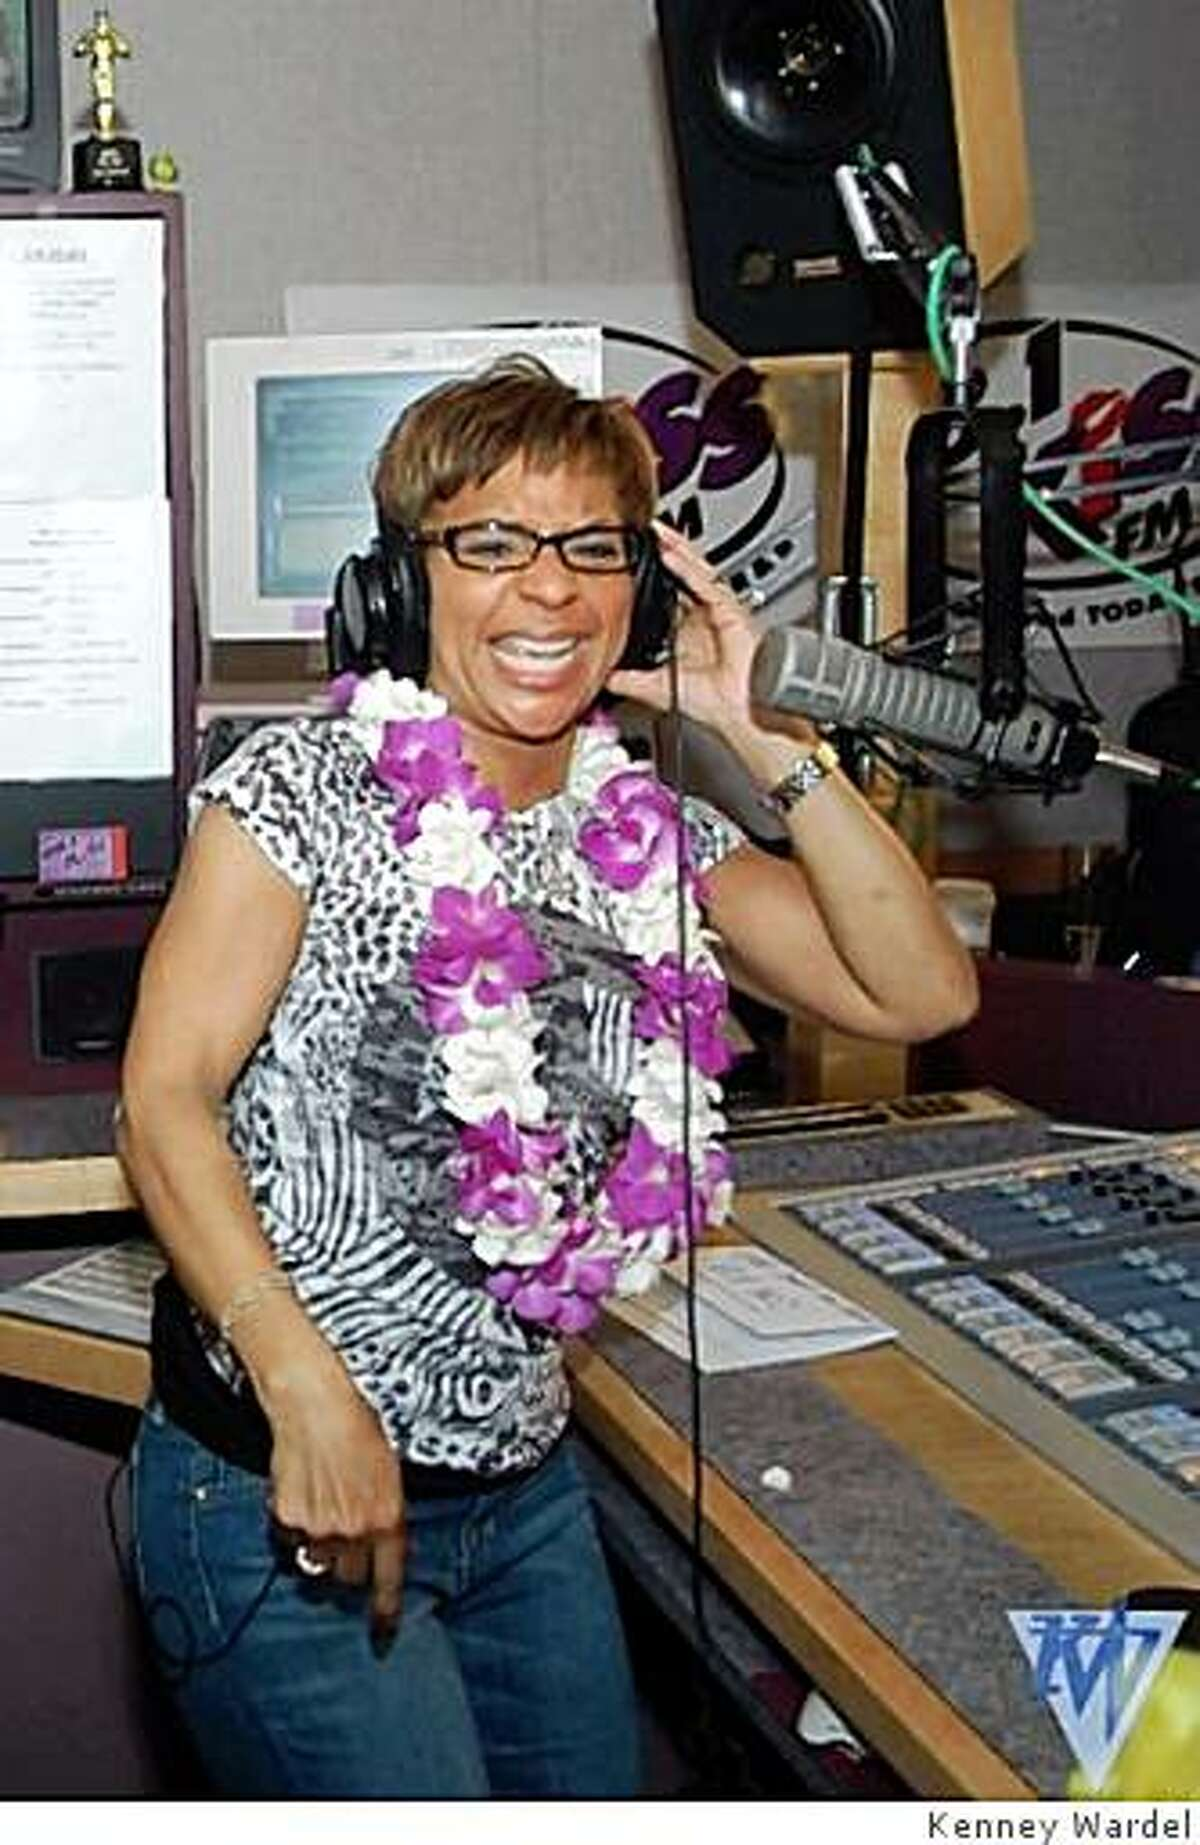 Renel Brooks-Moon gets her groove on and dances to one of her favorite jams during her last show on KISS-FM.